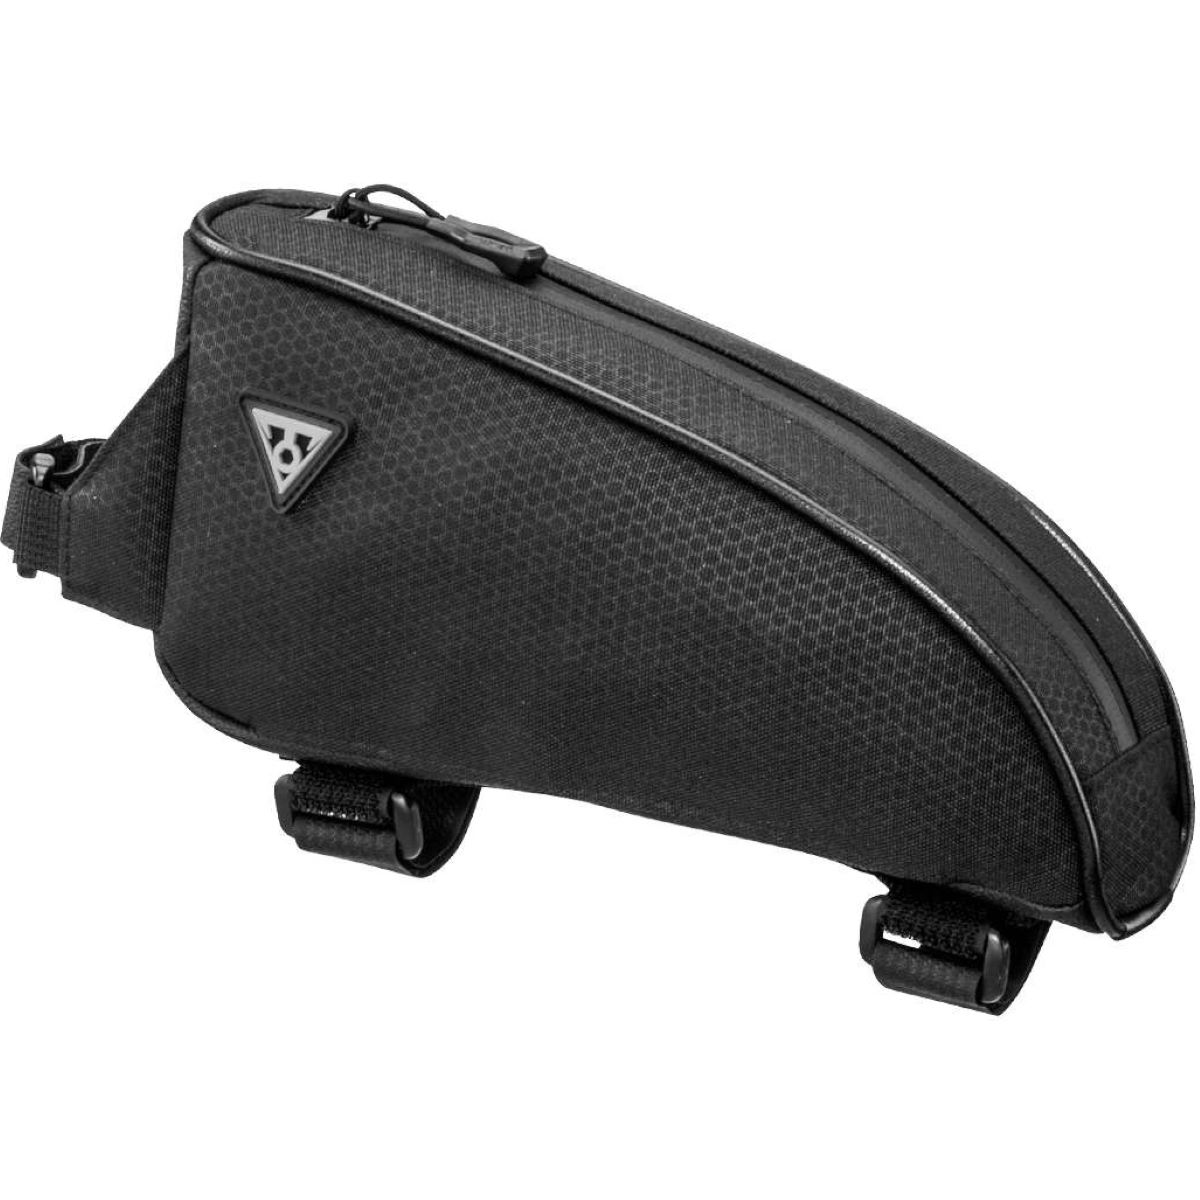 Topeak Topeak Toploader Top Tube Bag   Top Tube Bags